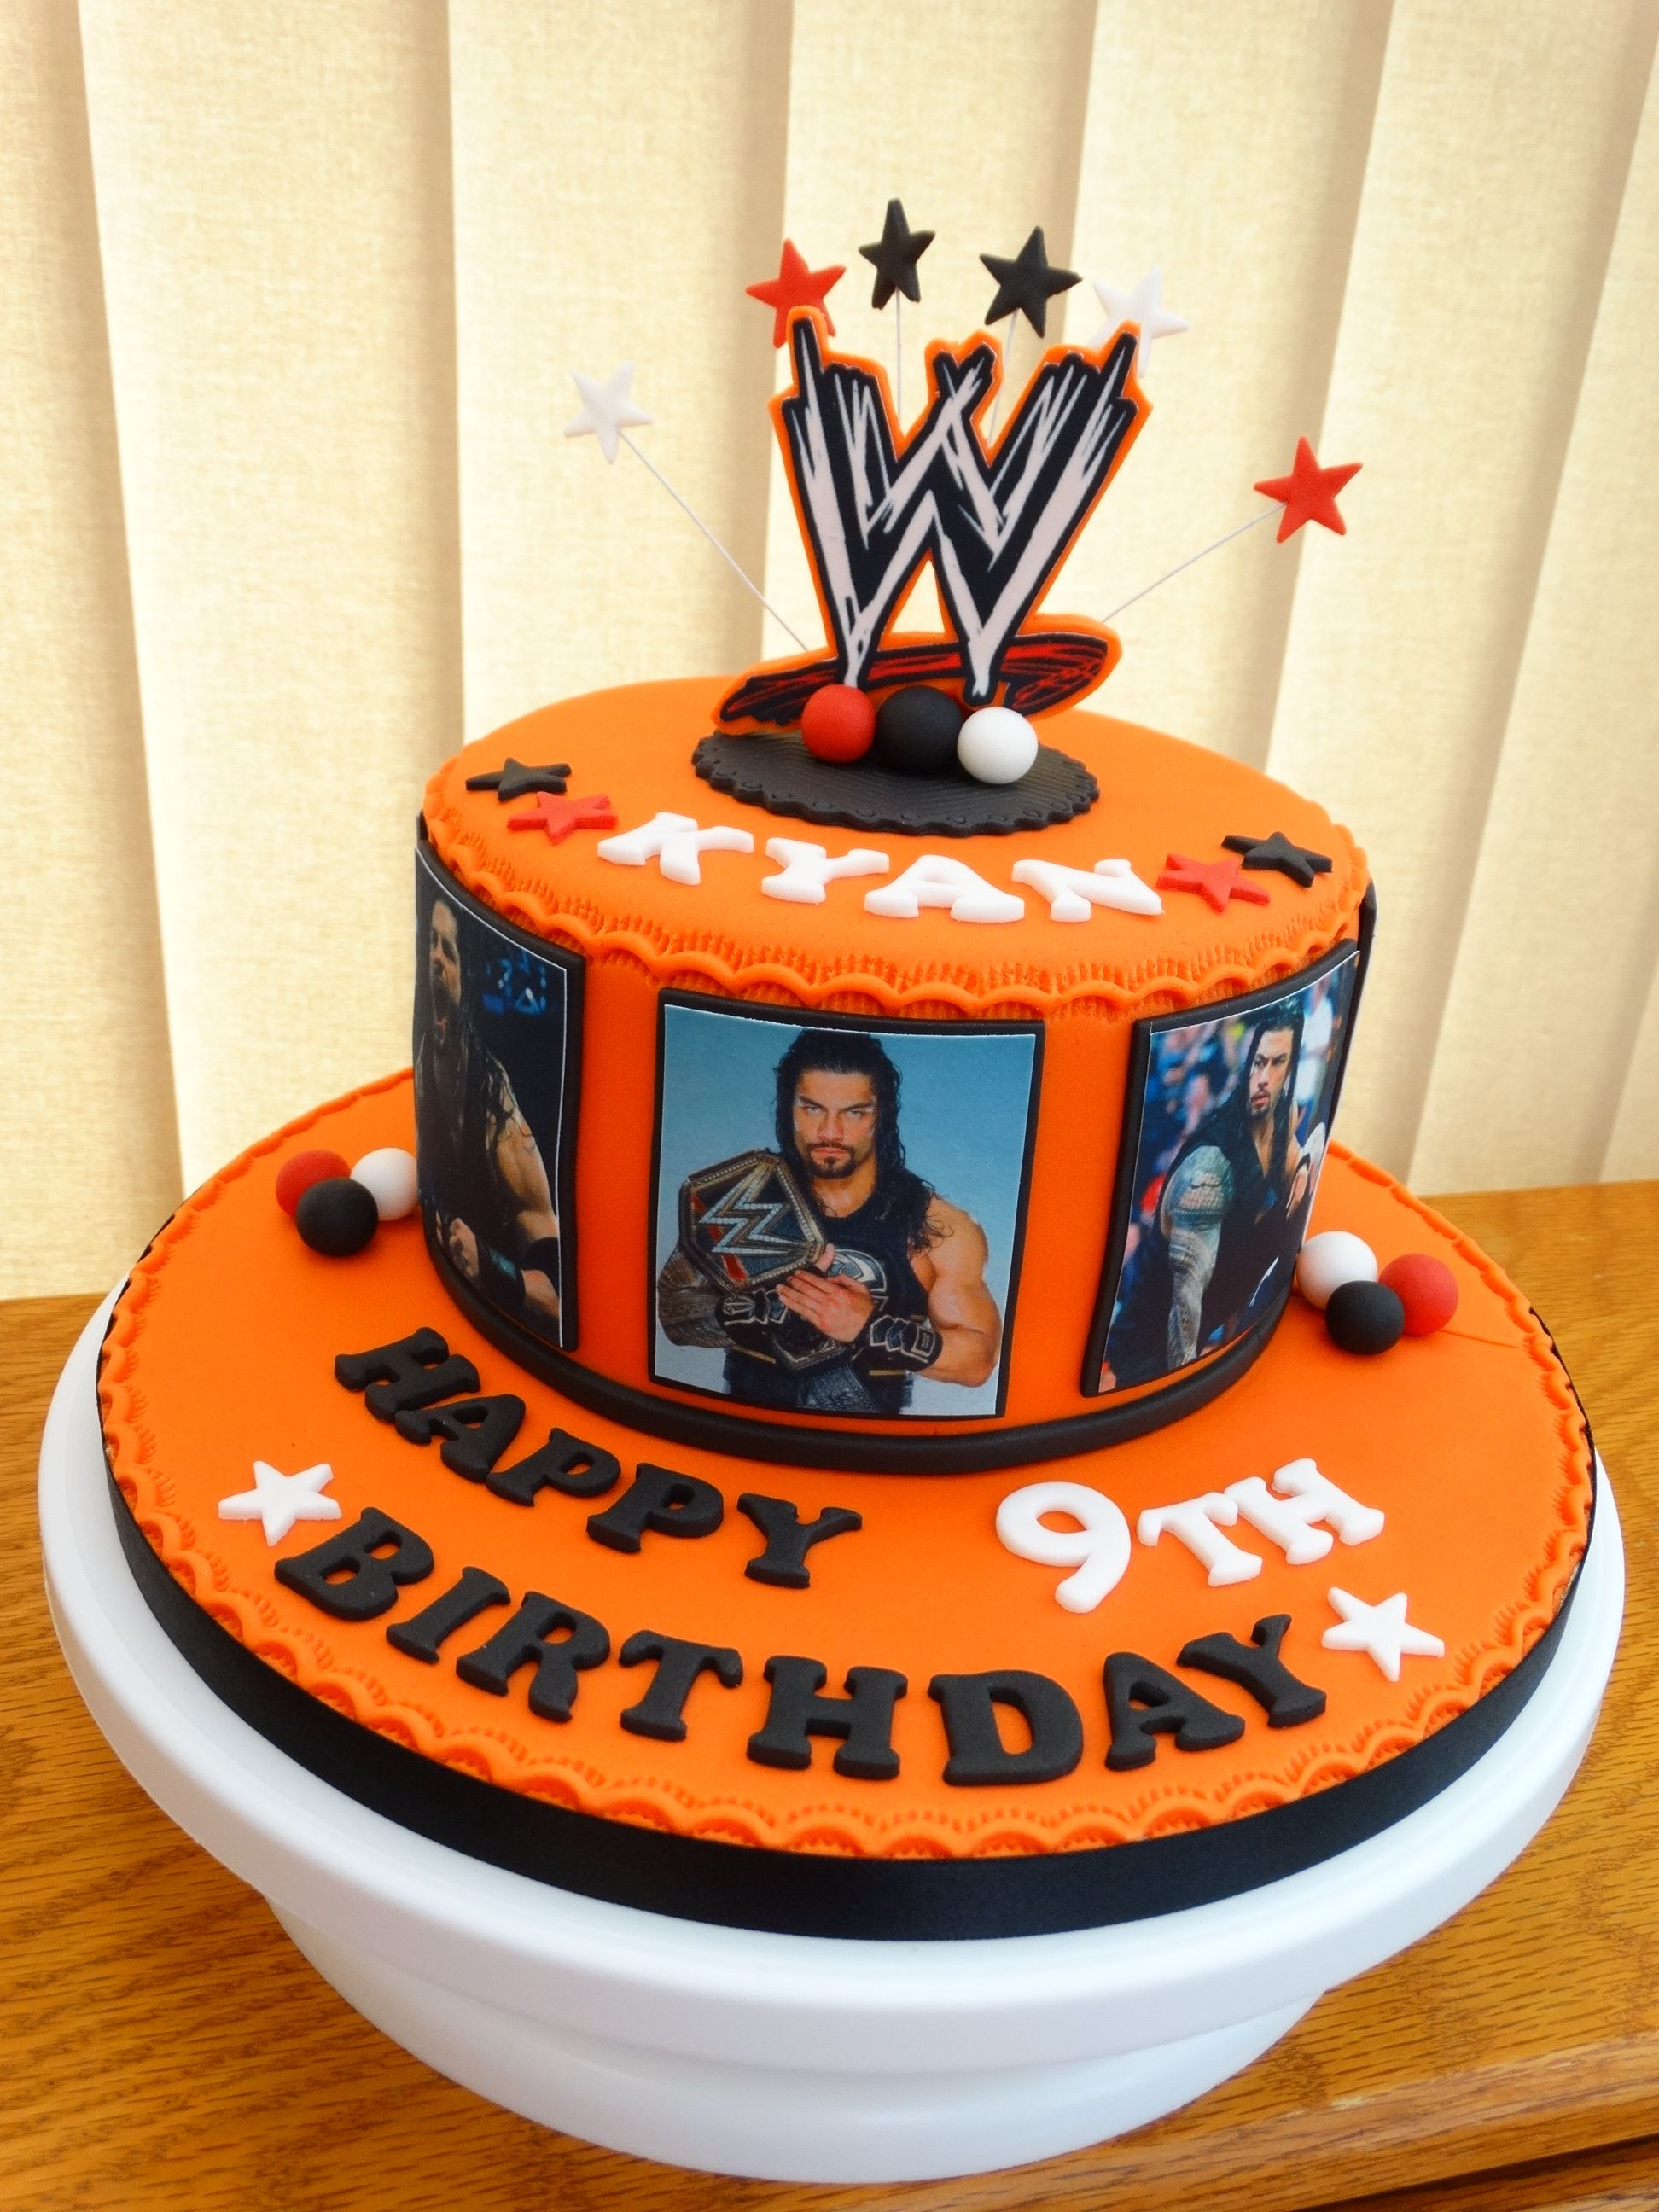 Cool Roman Reigns Wwe Themed Cake Xmcx Wwe Birthday Cakes Wwe Personalised Birthday Cards Paralily Jamesorg